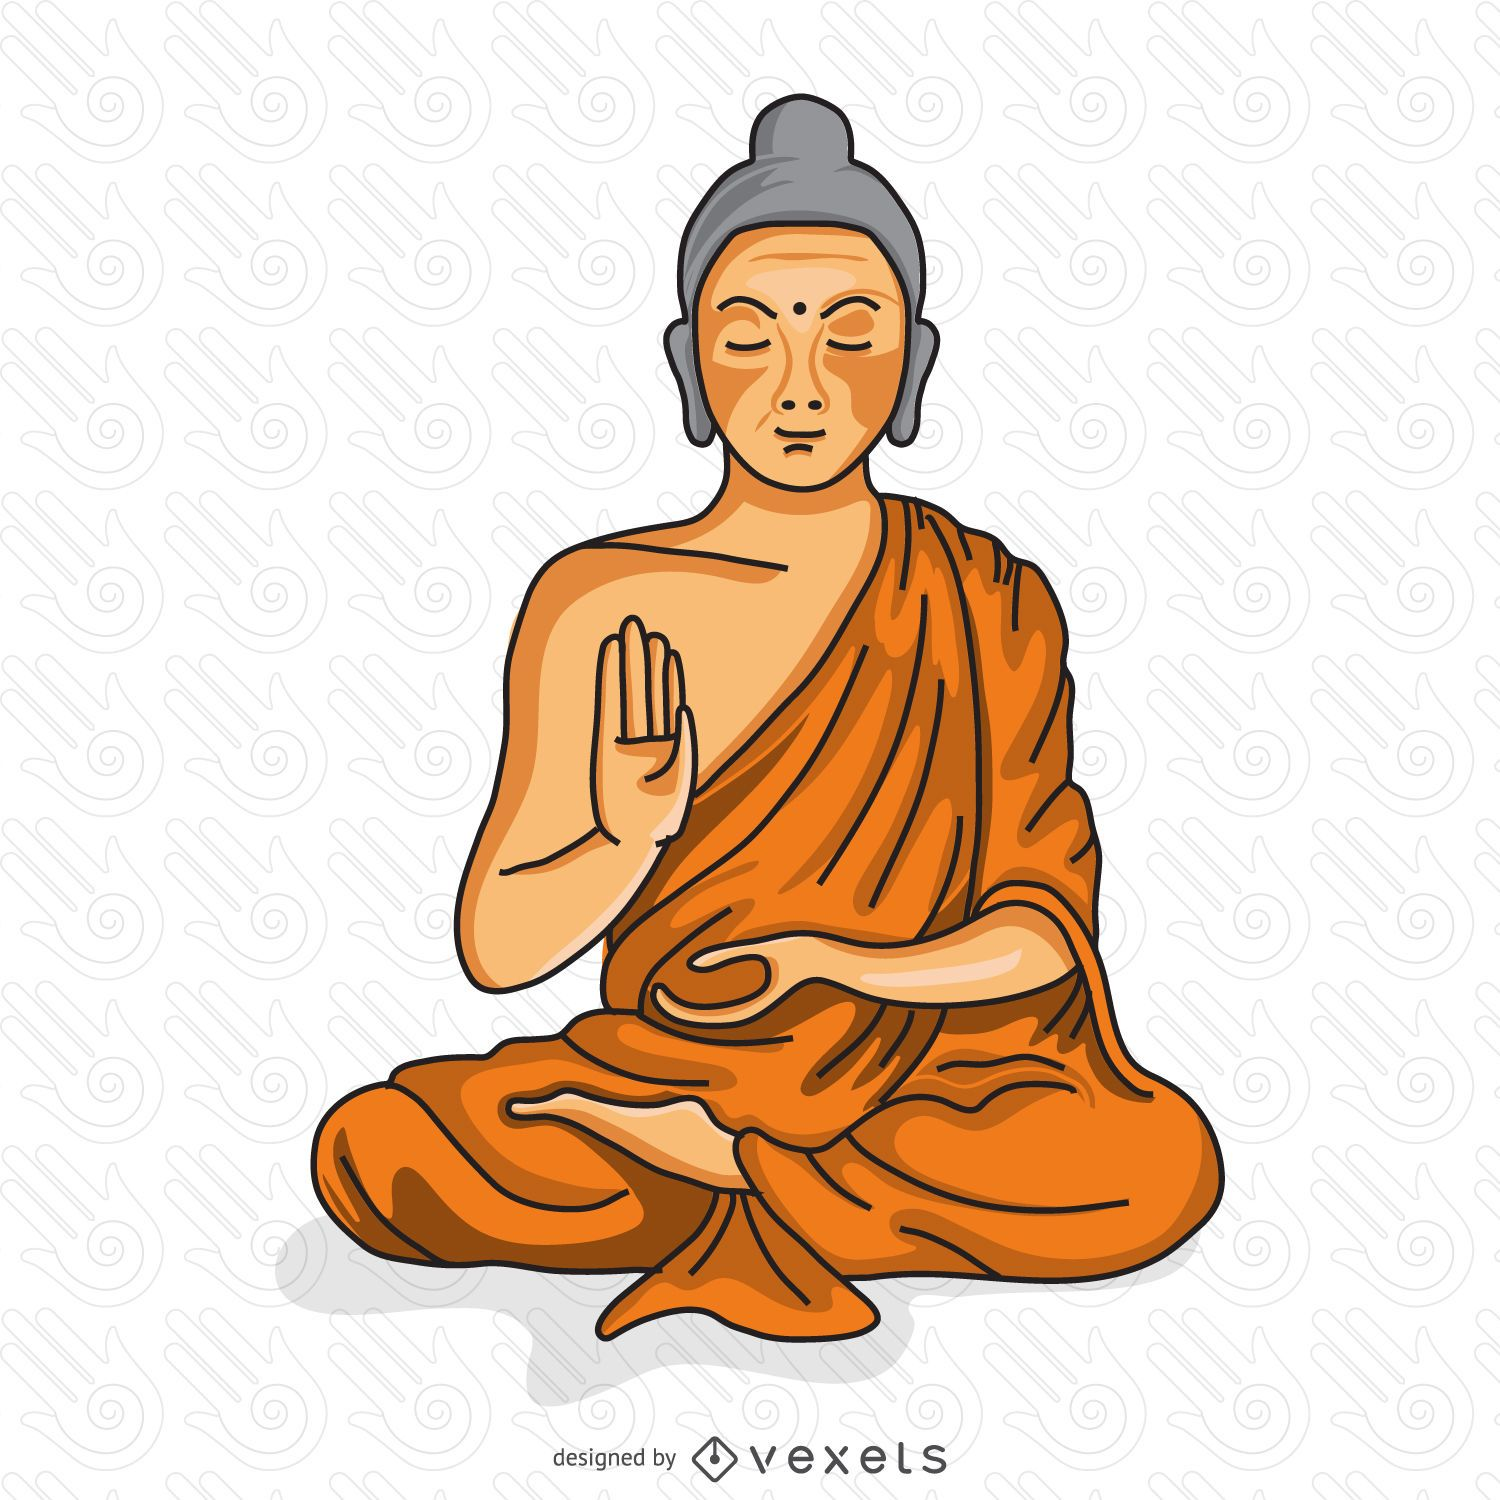 buddha illustration buddhist monk meditating illustration vector download 8995